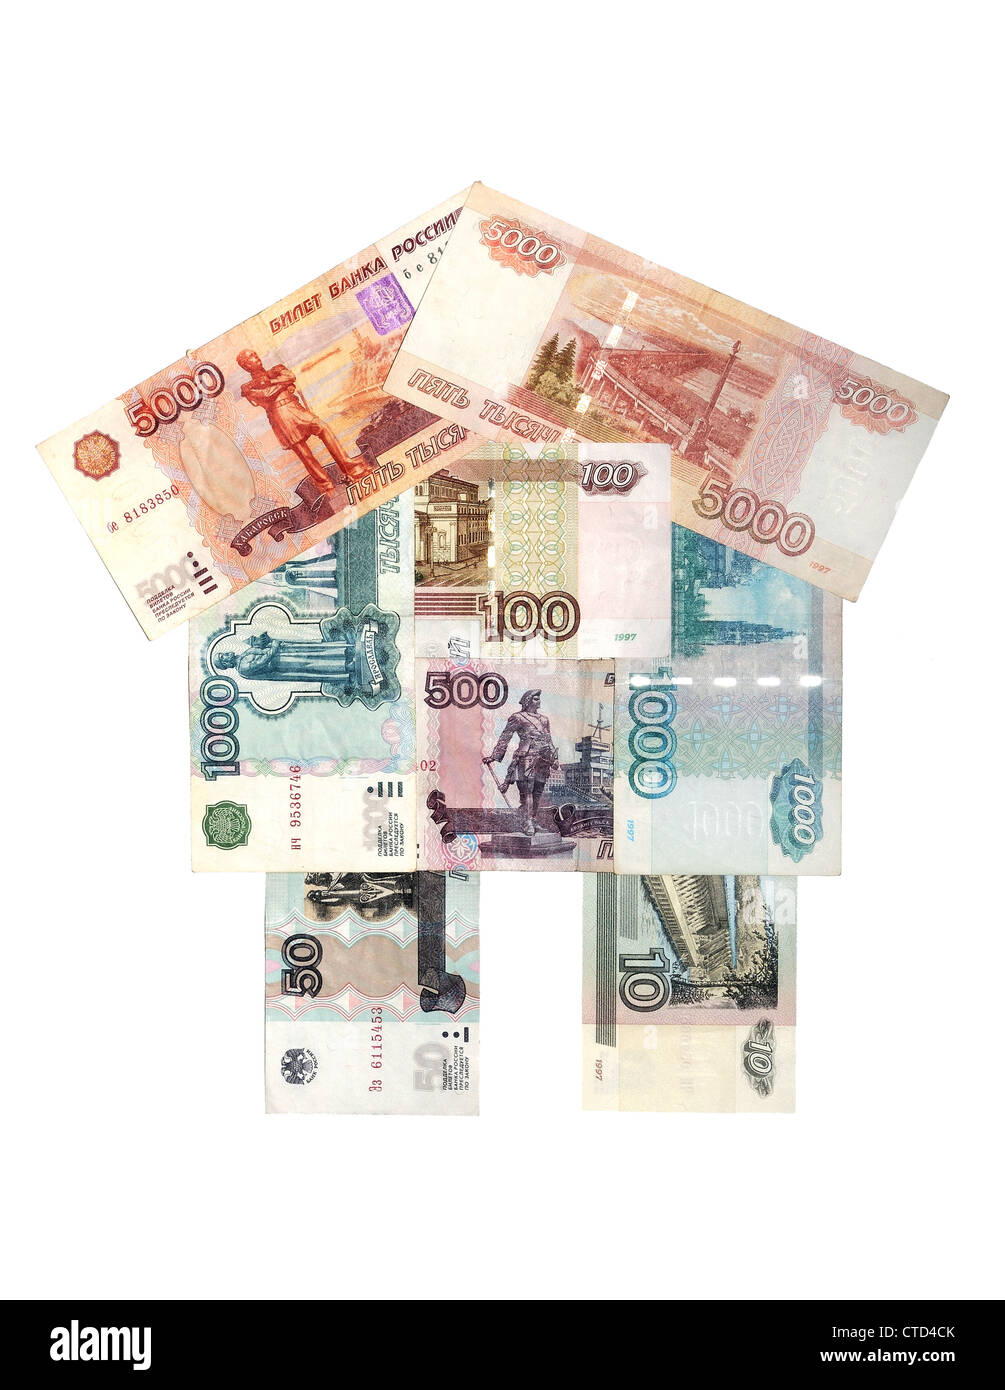 The house is built of Russian rubles of different denomination Stock Photo